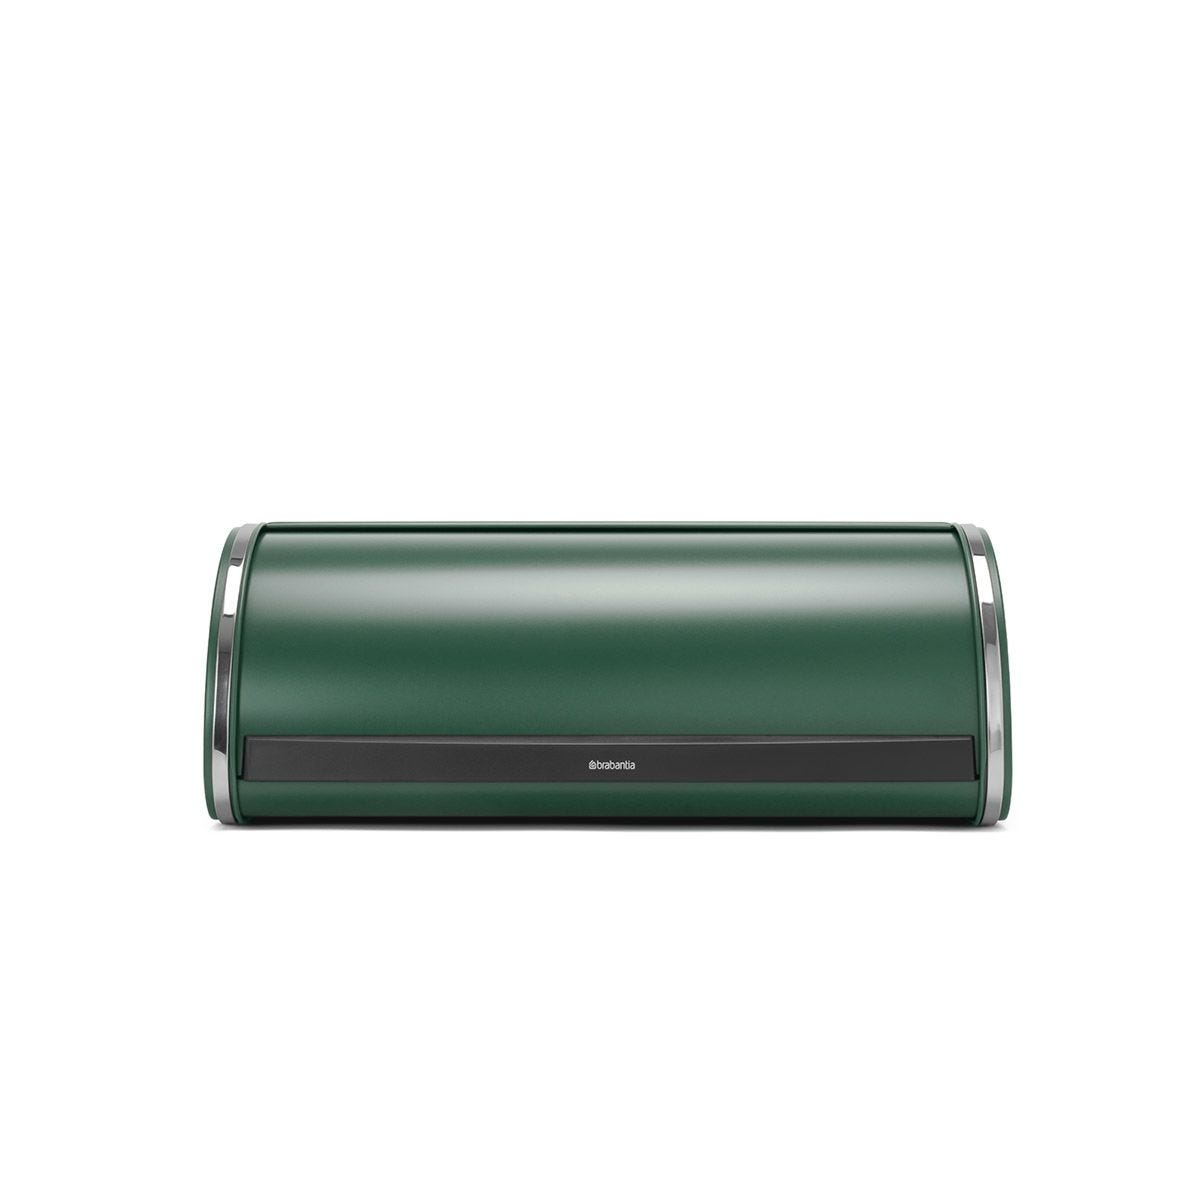 Brabantia Roll Top Bread Bin - Pine Green